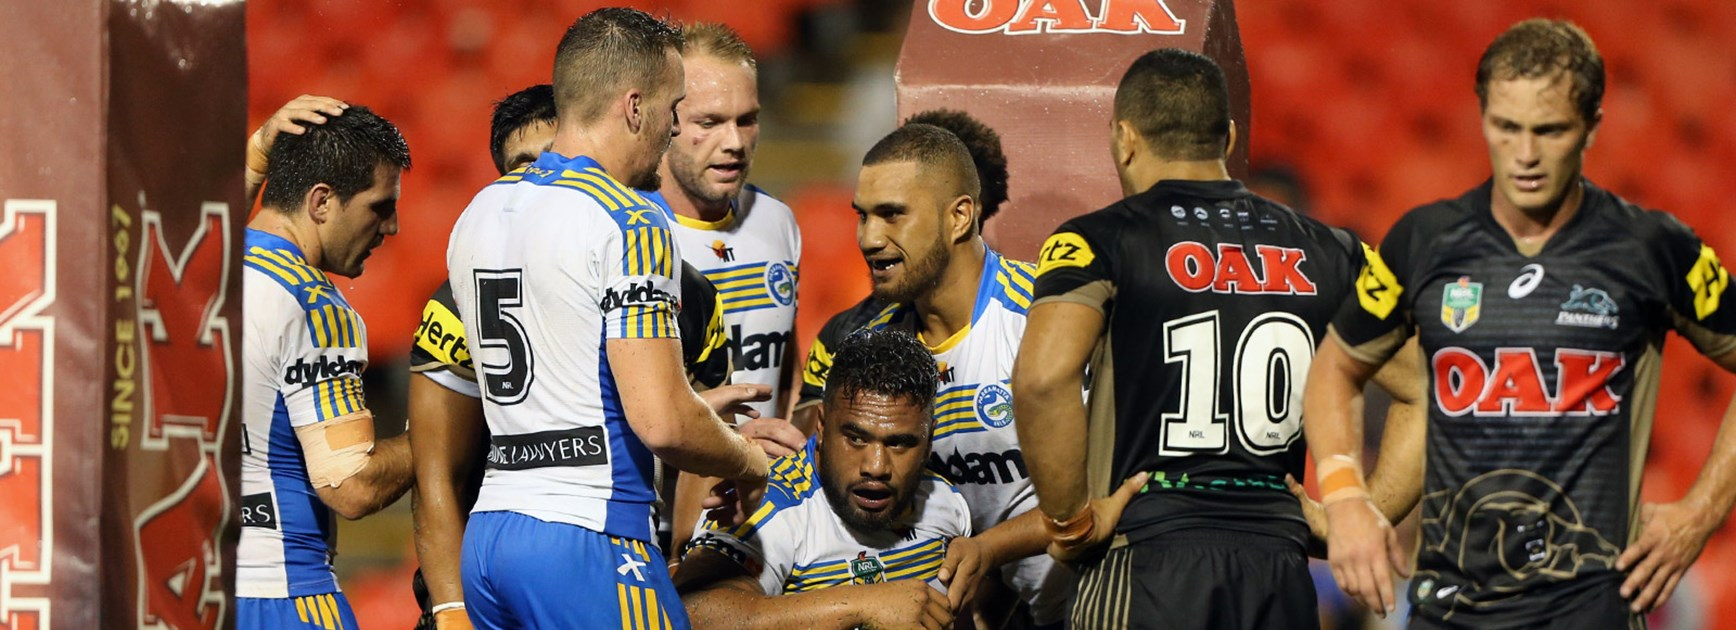 The Eels celebrate a try during their trial win over the Panthers at Pepper Stadium.